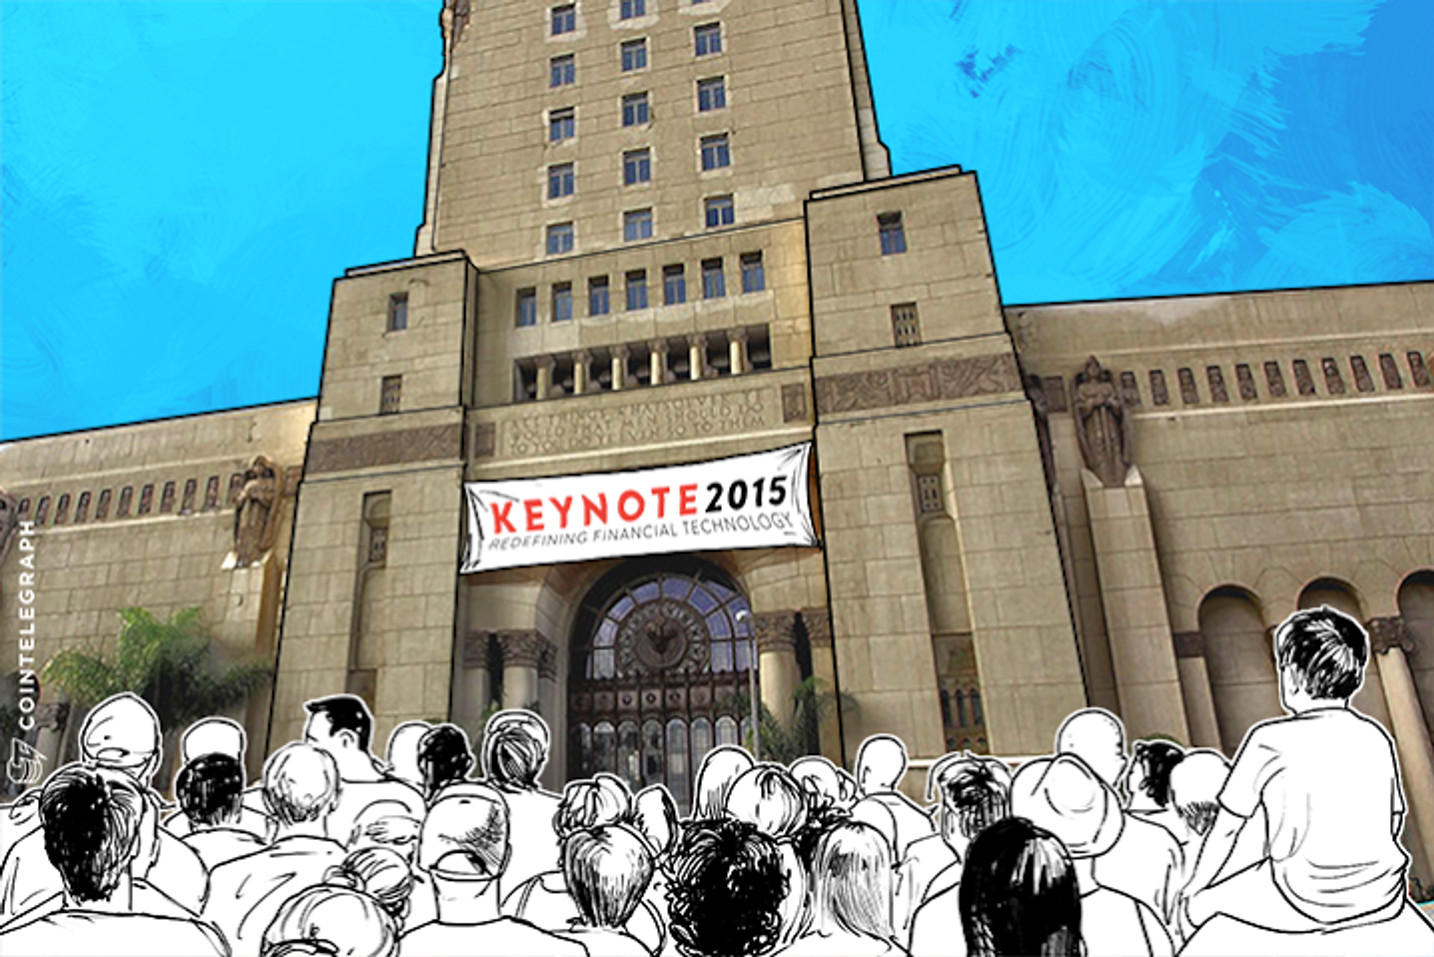 Keynote 2015: Reinventing Finance with Distributed Ledger Technology